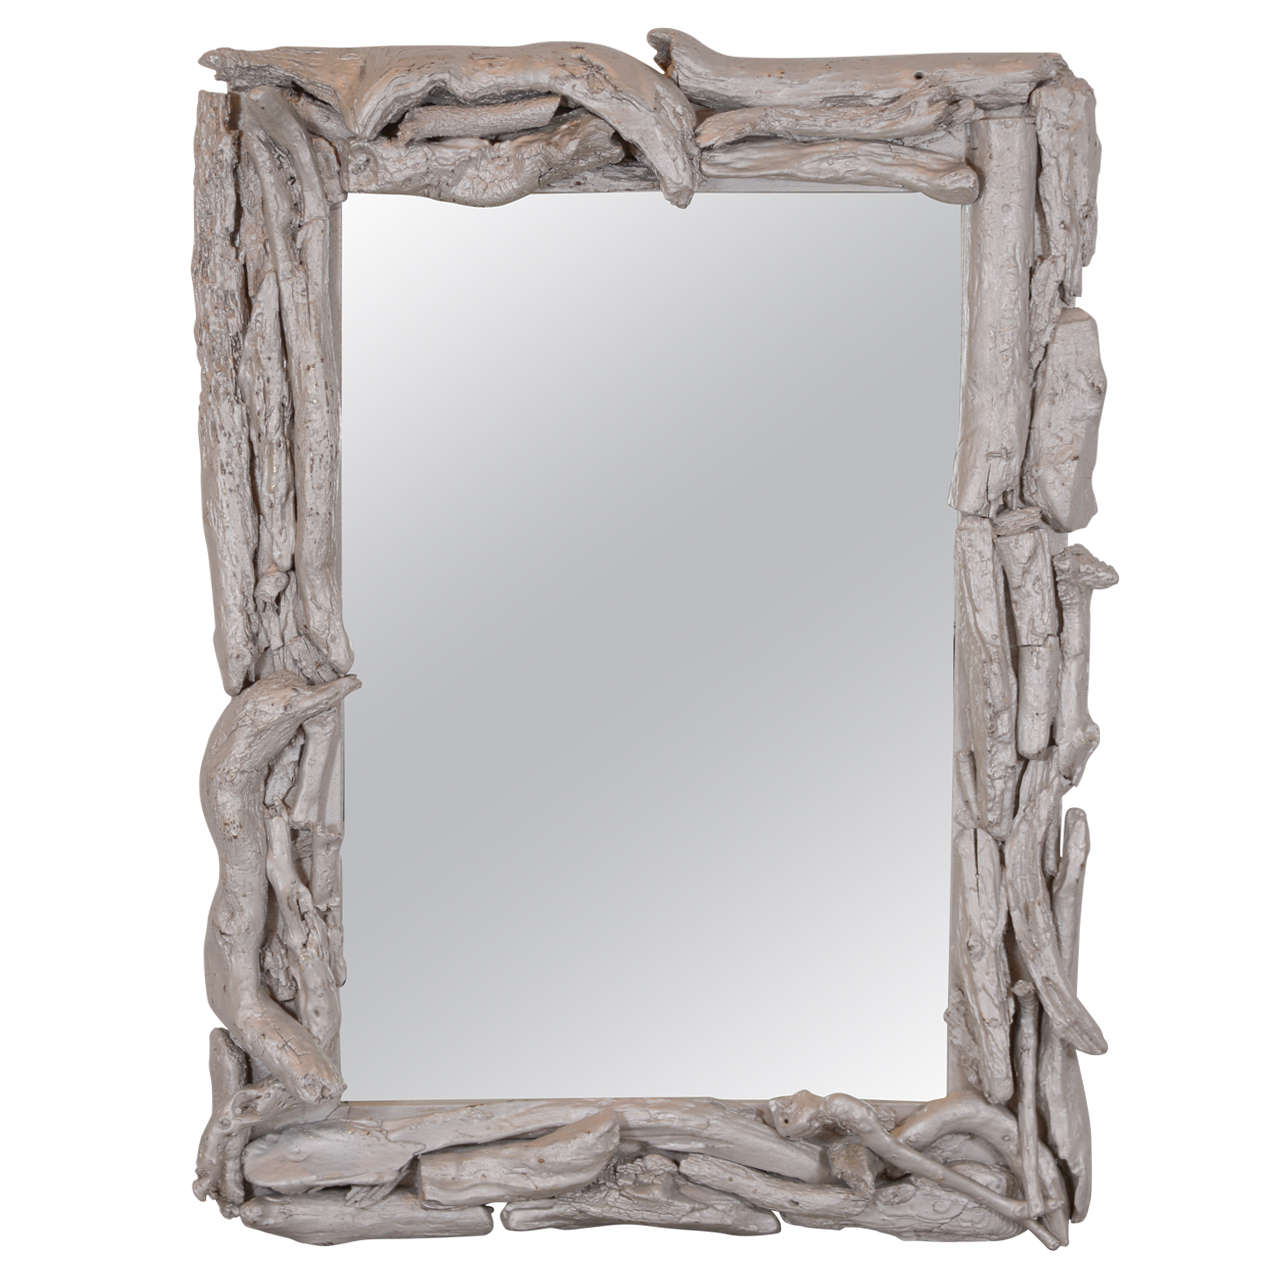 vintage silver leafed driftwood frame mirror 1 - Driftwood Picture Frame